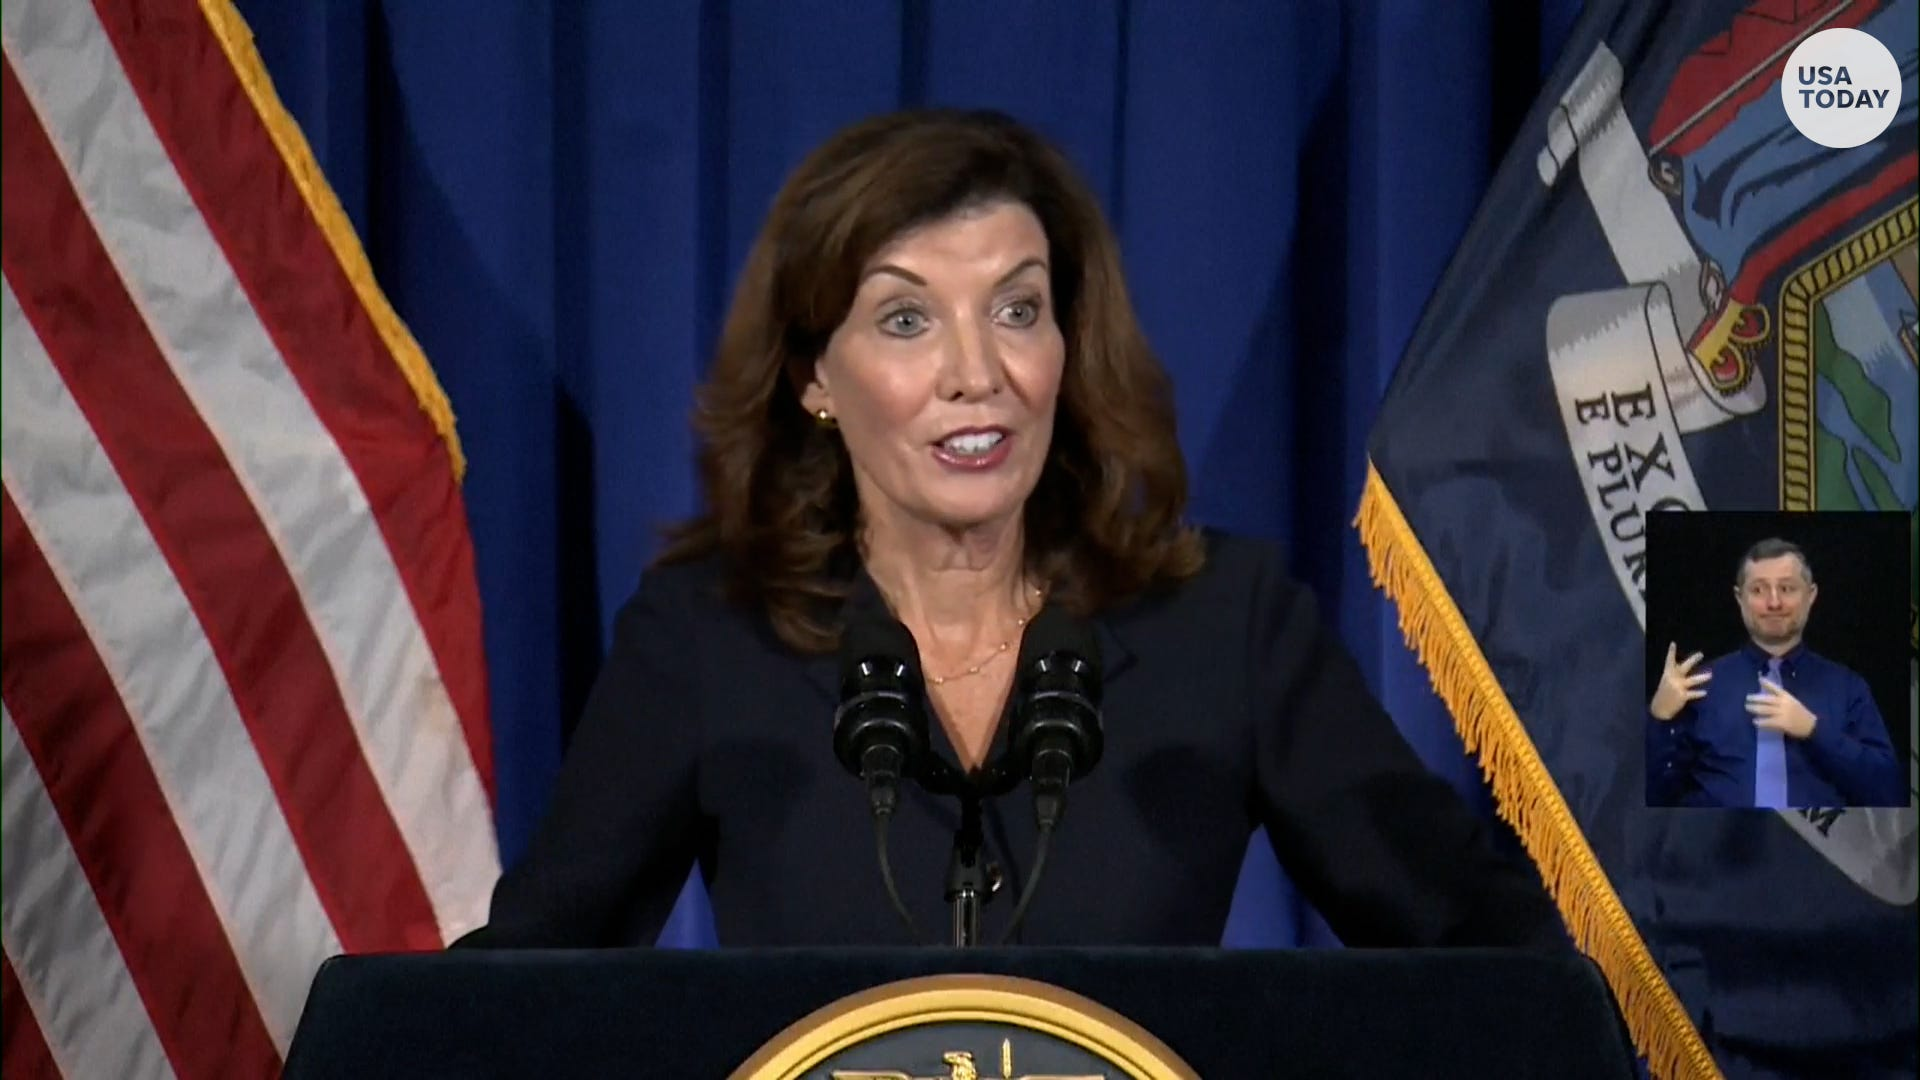 New York Lt. Gov. Kathy Hochul raises her arms as she stands behind a podium.